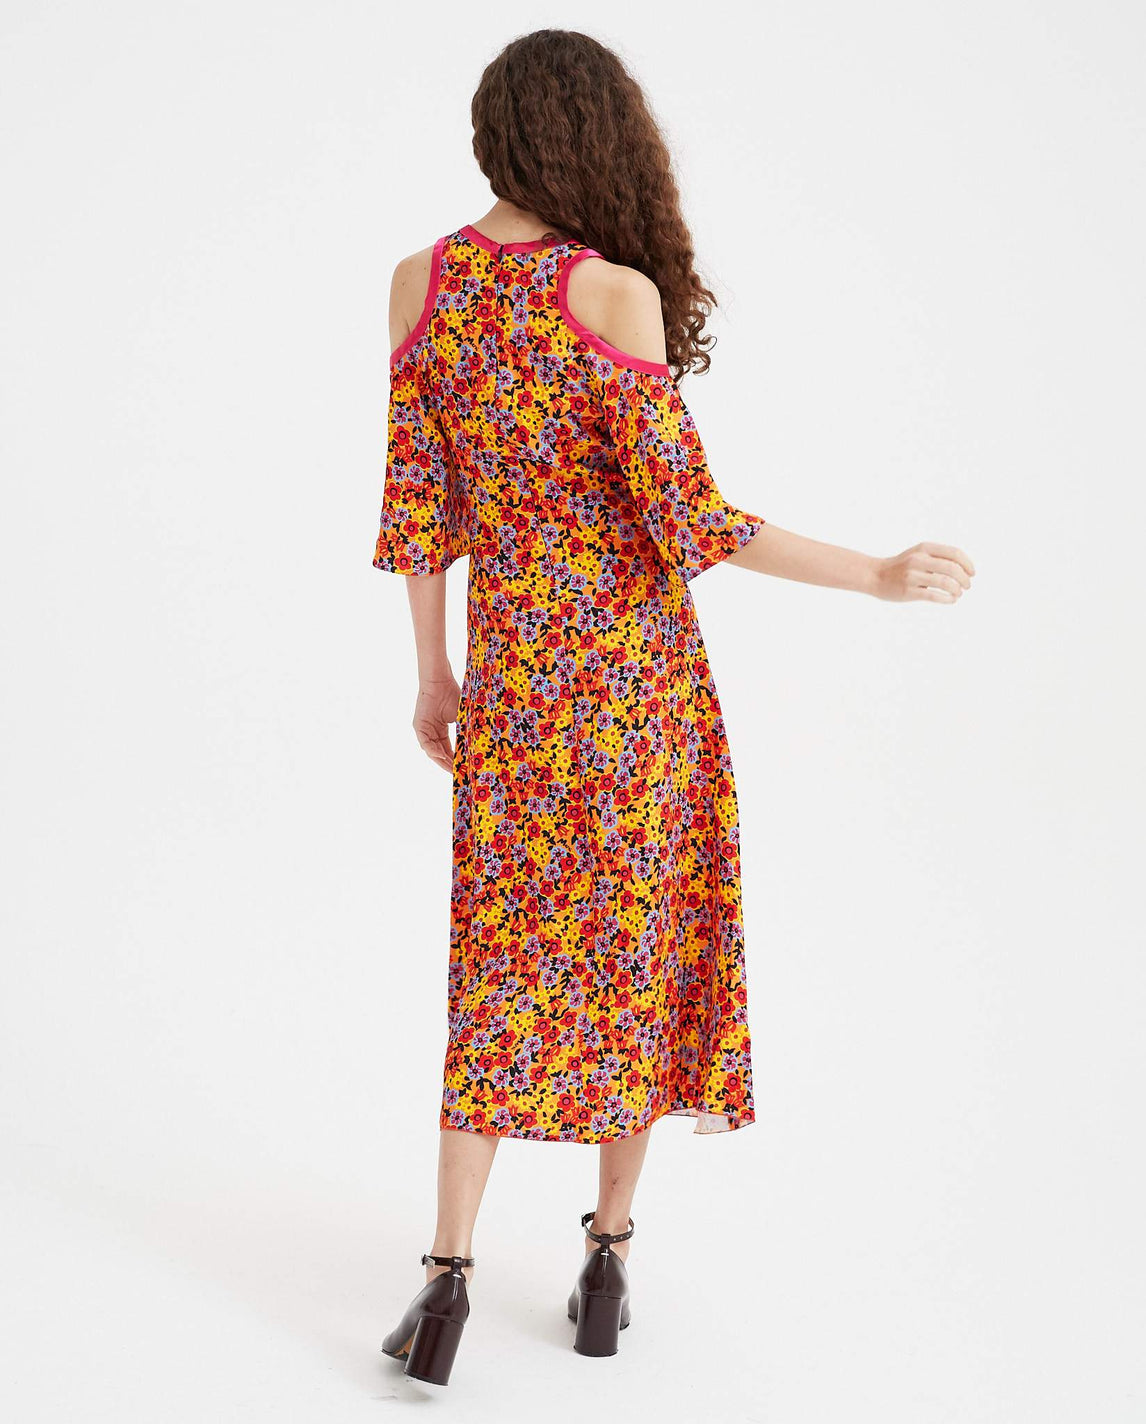 Floral Dress - Multi WOMENS MARNI